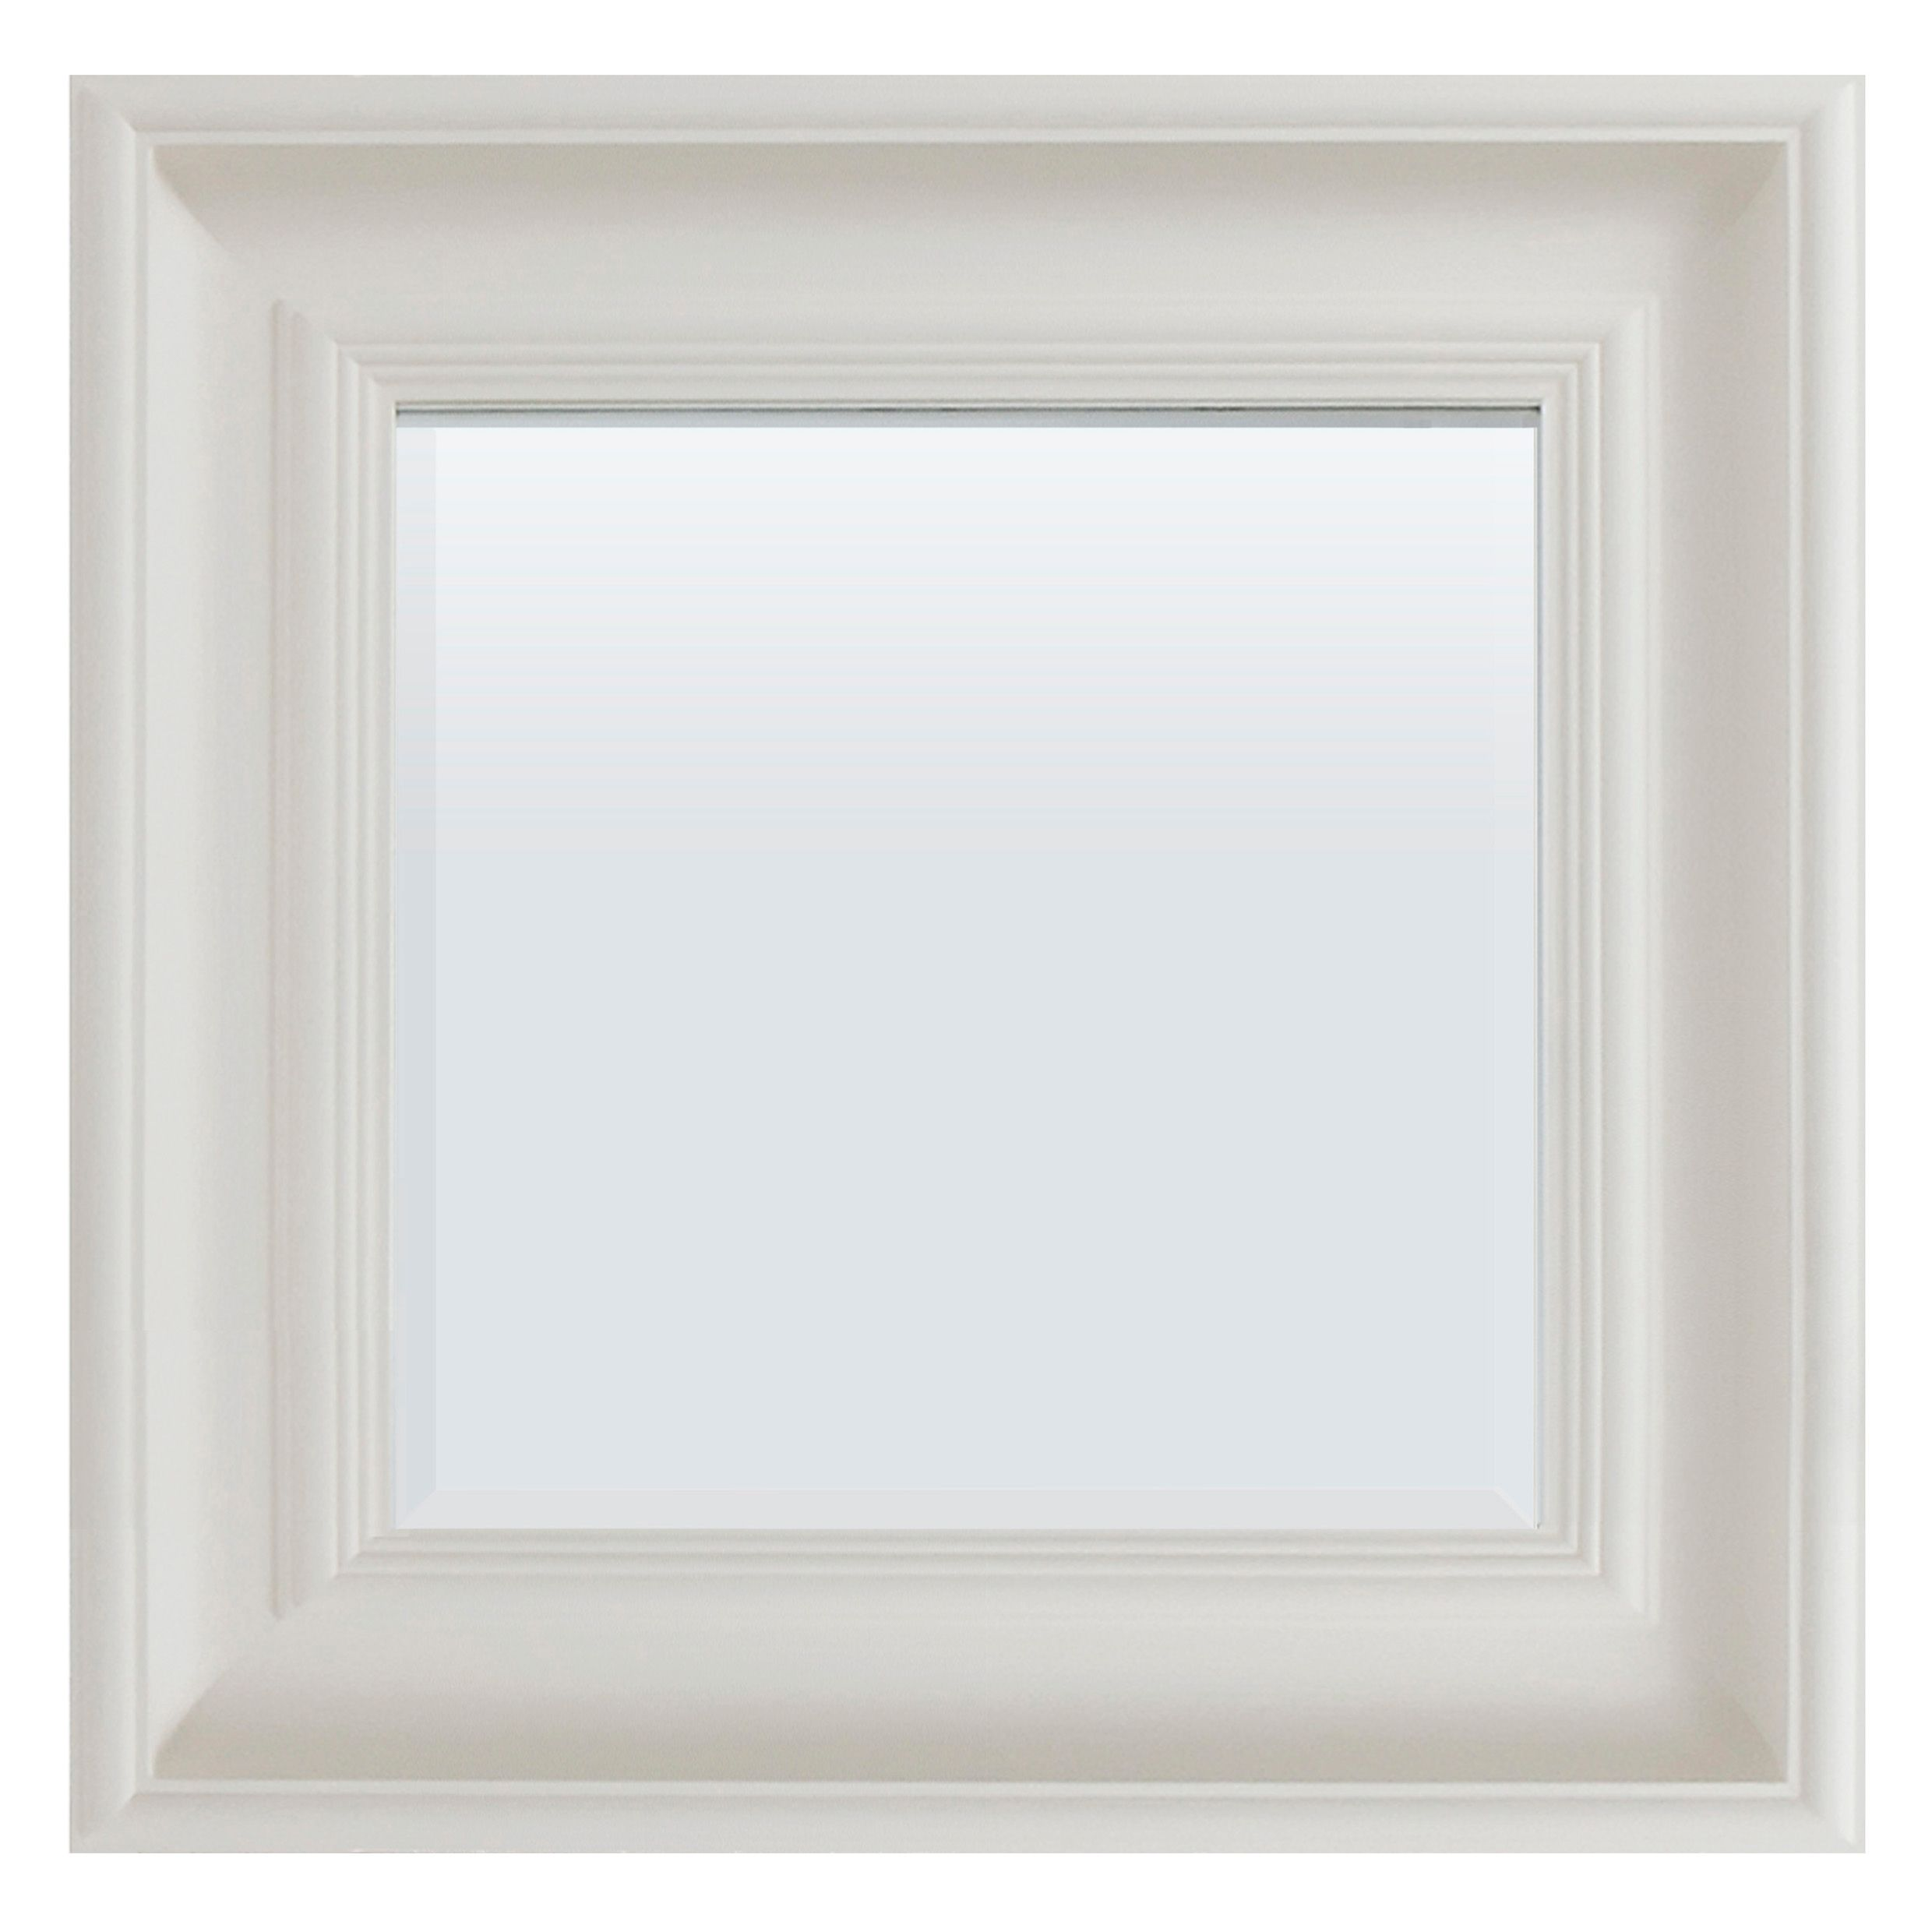 Emmy Cream 68cm x 68cm Mirror